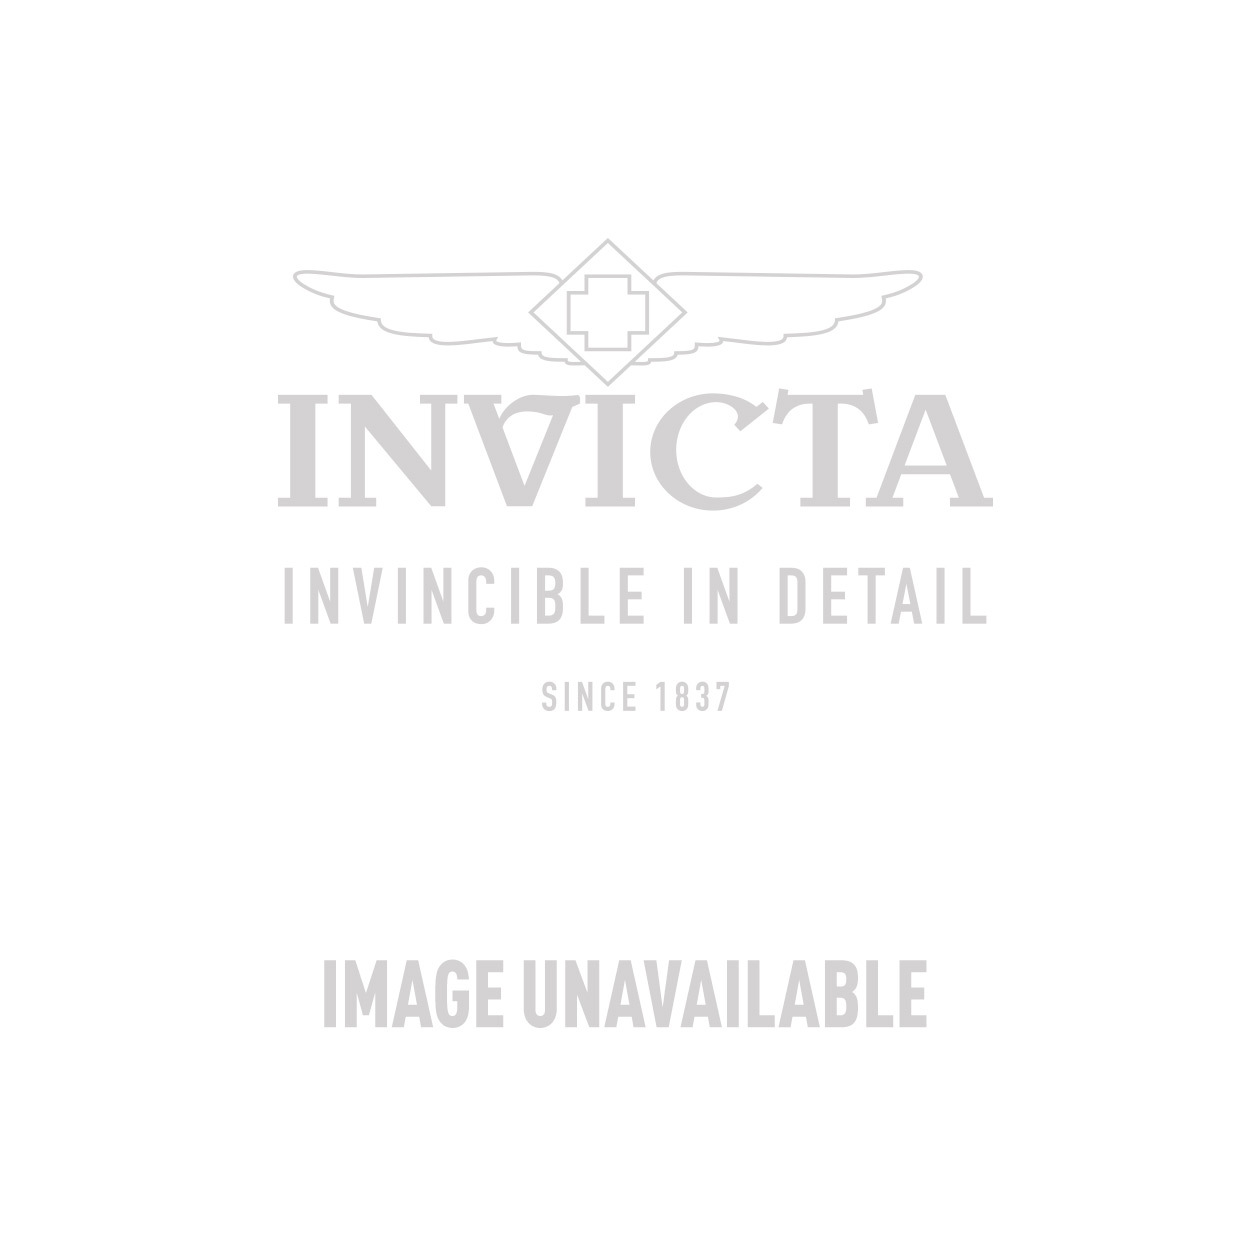 Invicta S1 Rally Swiss Made Quartz Watch - Gold case with Black tone Leather band - Model 15795